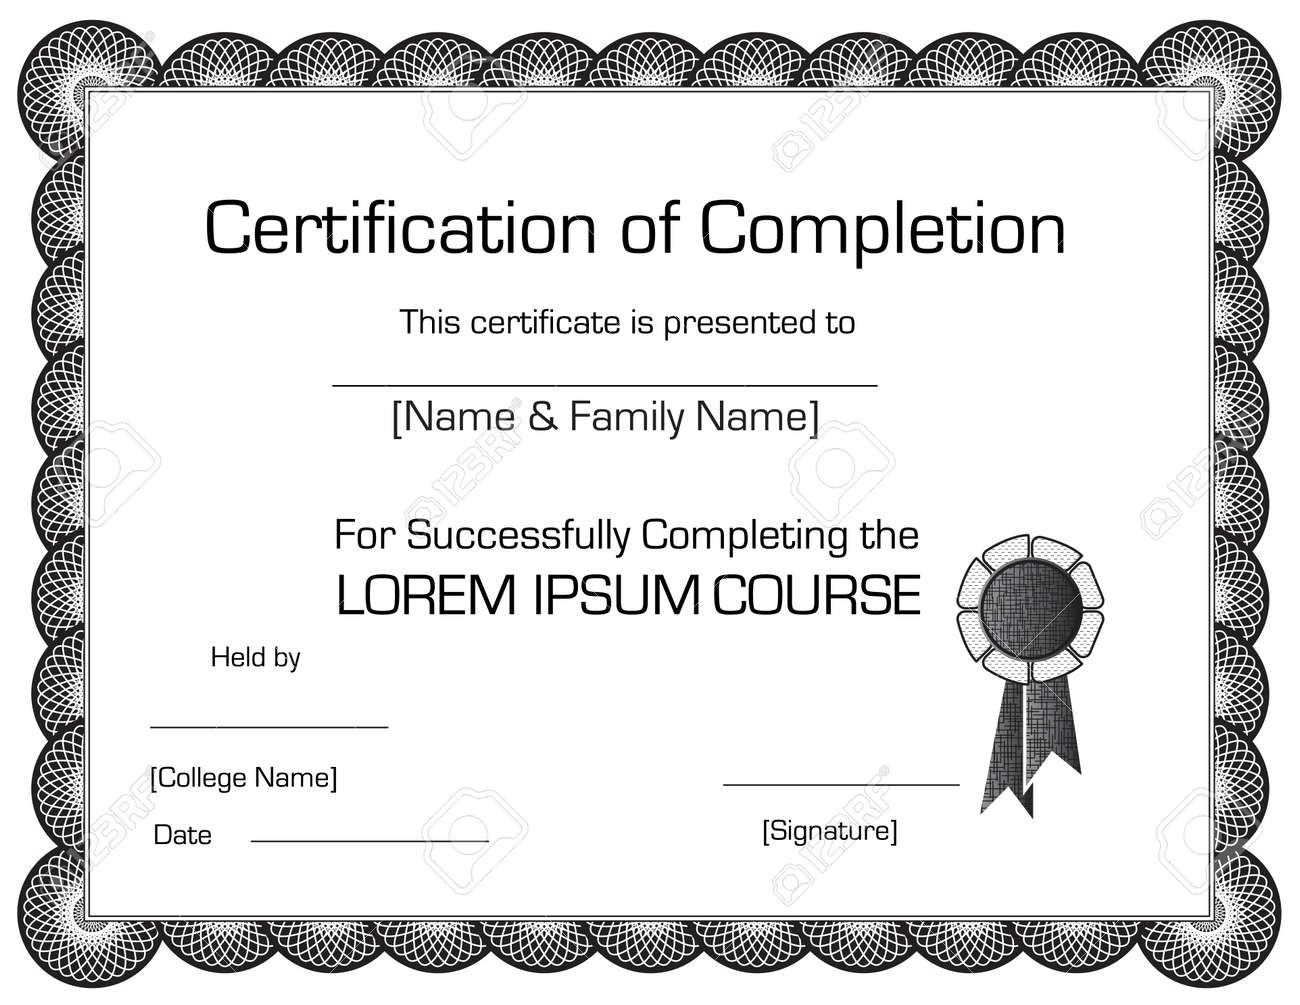 Free templates for certificates of completion printable movie 12 certificate of completion template email with resume sample 7344771 elegant certificate of completion template stock yadclub Choice Image